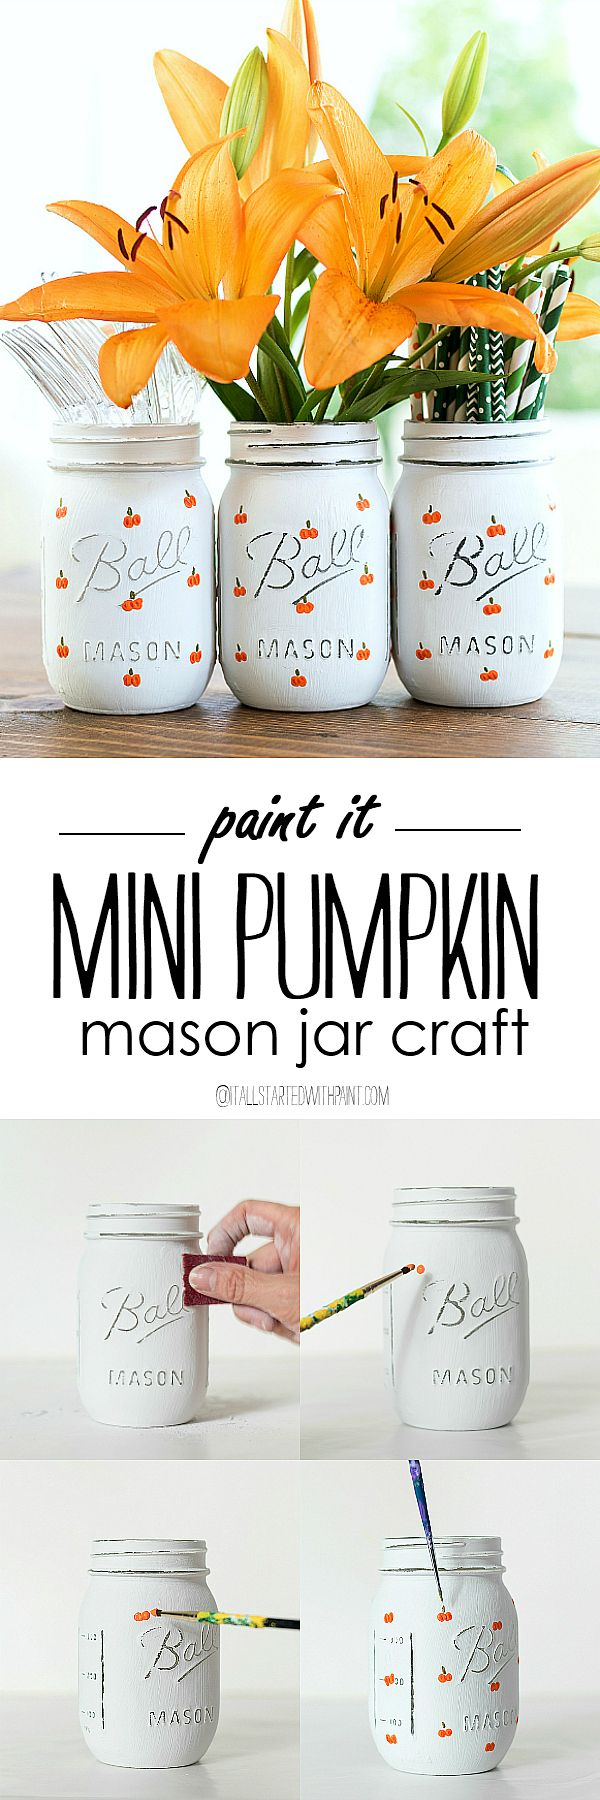 Painted Pumpkin Mason Jar Craft